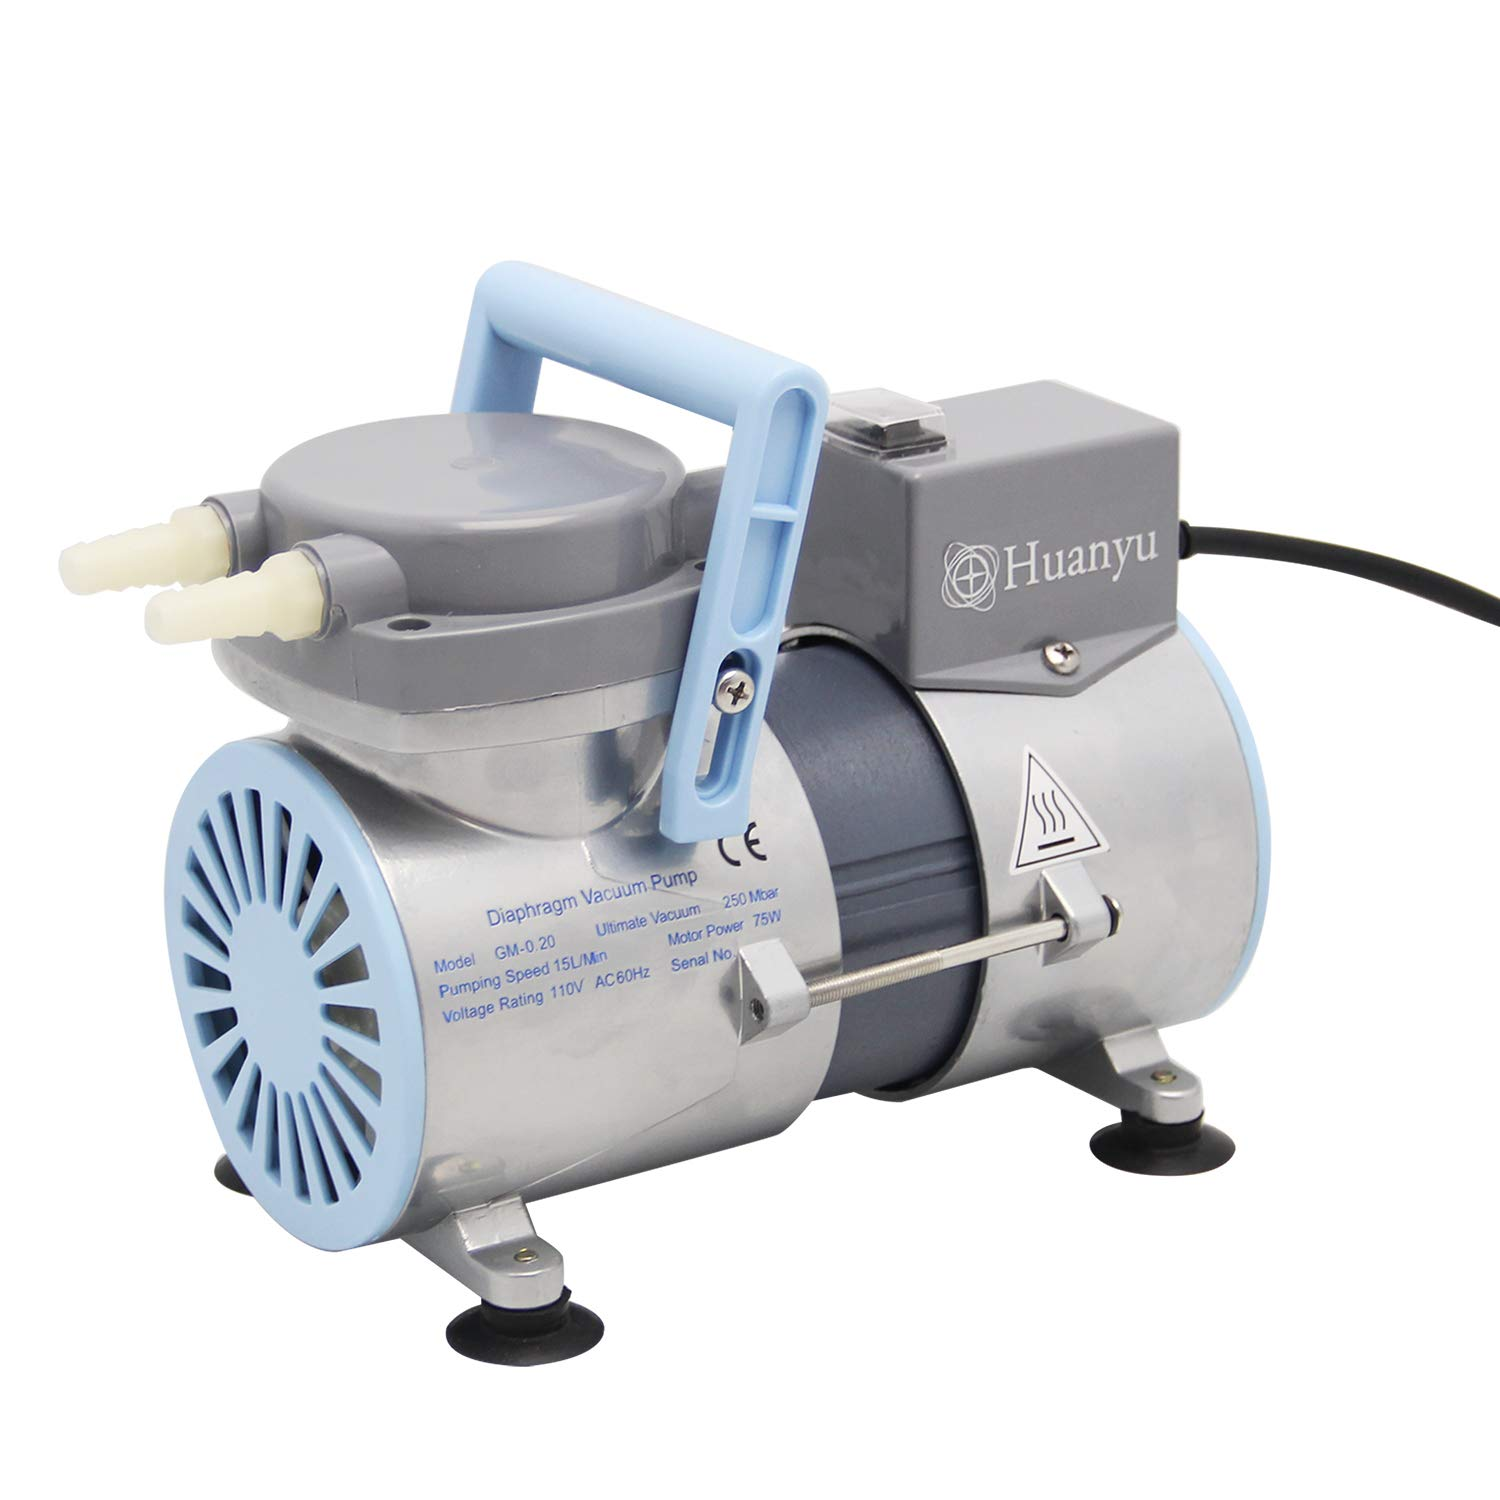 Huanyu Oilless Diaphragm Vacuum Pump Oil Free Anticorrosive Pump Industrial Lab 12L/min (Ordinary Type, GM-0.2(Single Head)) by Huanyu